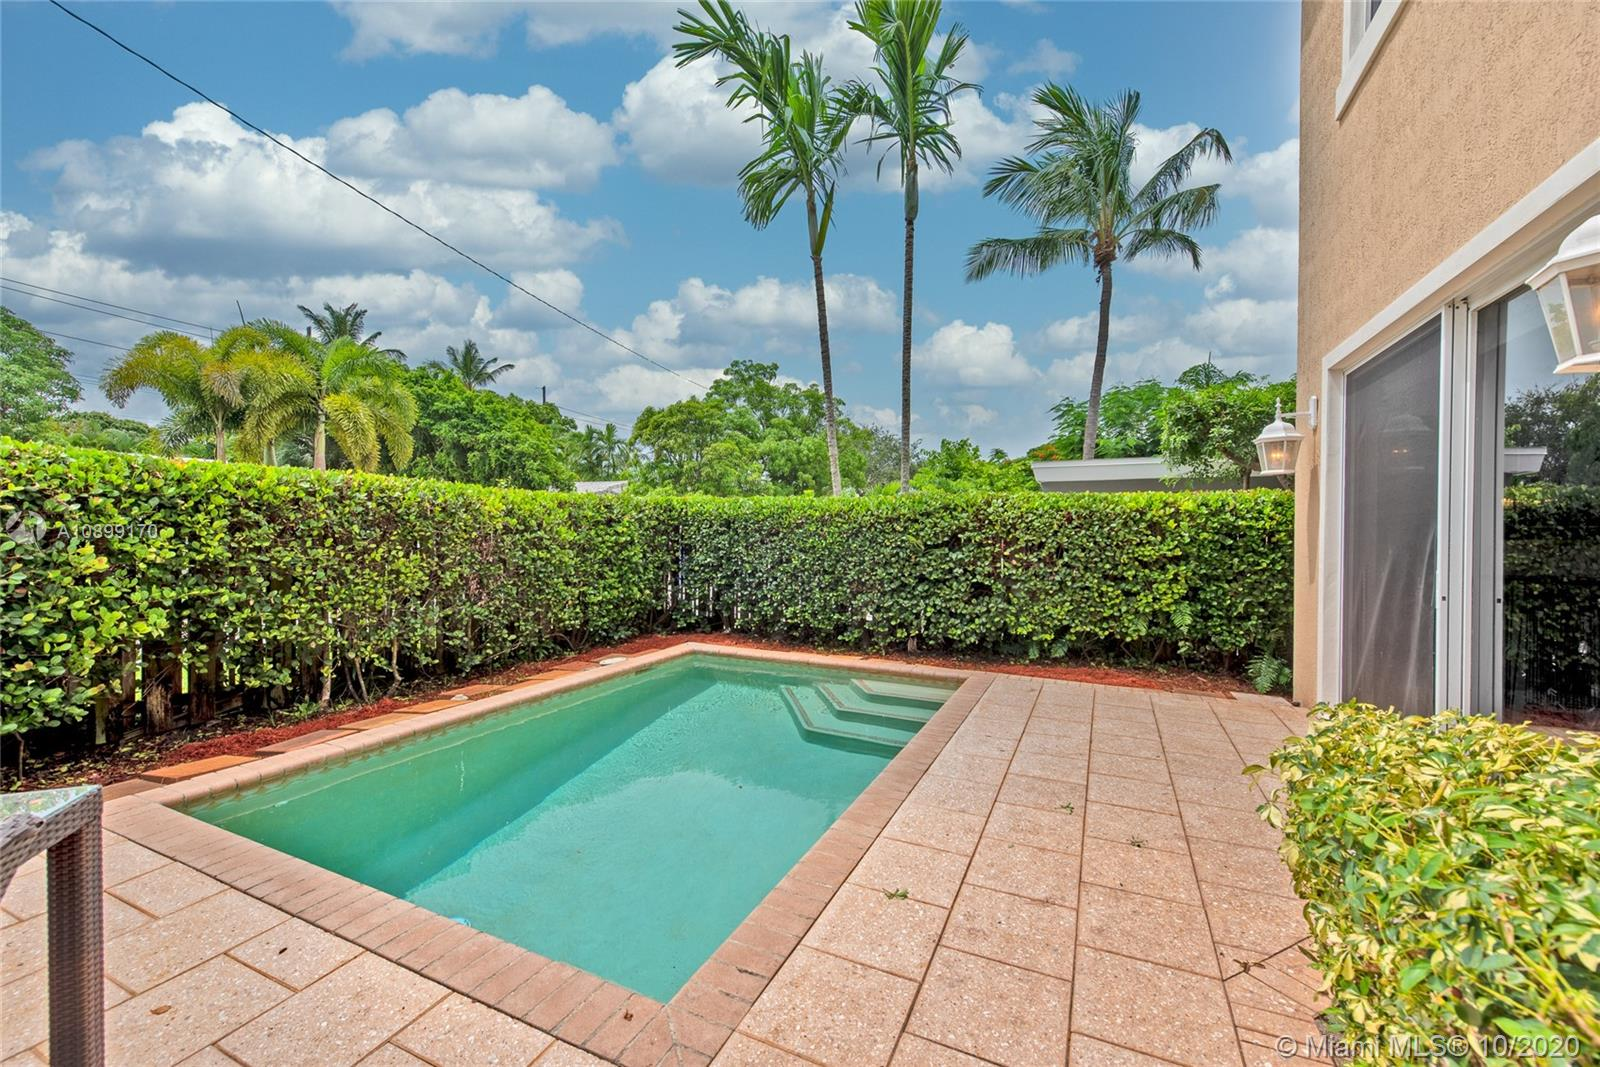 Beautiful and Spacious Townhome w/ private Pool.. Feels like living in a Single Family Home. Completely fenced and private yard. Hurricane Impact Windows/Doors. Bright open floor plan with soaring ceilings. Gourmet Kitchen, Walk-in Pantry, Stainless Steel Appliances (including Wine Fridge), Granite Counter top. Custom dry bar. Large and Bright Master Bedroom w/full Dual Custom Walk-in Closets. Beautiful Solid Mahogany Wood Flooring. Upstairs Laundry. Open Balconies. Custom Lighting & Window Treatments. AV Wired Surround Sound System. 2 Car Garage opens to Brick Pavers Driveway. Brand New A/C (2020 with 10 year warranty) NO HOA!  Walking distance from Holiday Park in Victoria Park, 2 miles from the Beach, 1.5 mile from Las Olas, Restaurants and Shops!